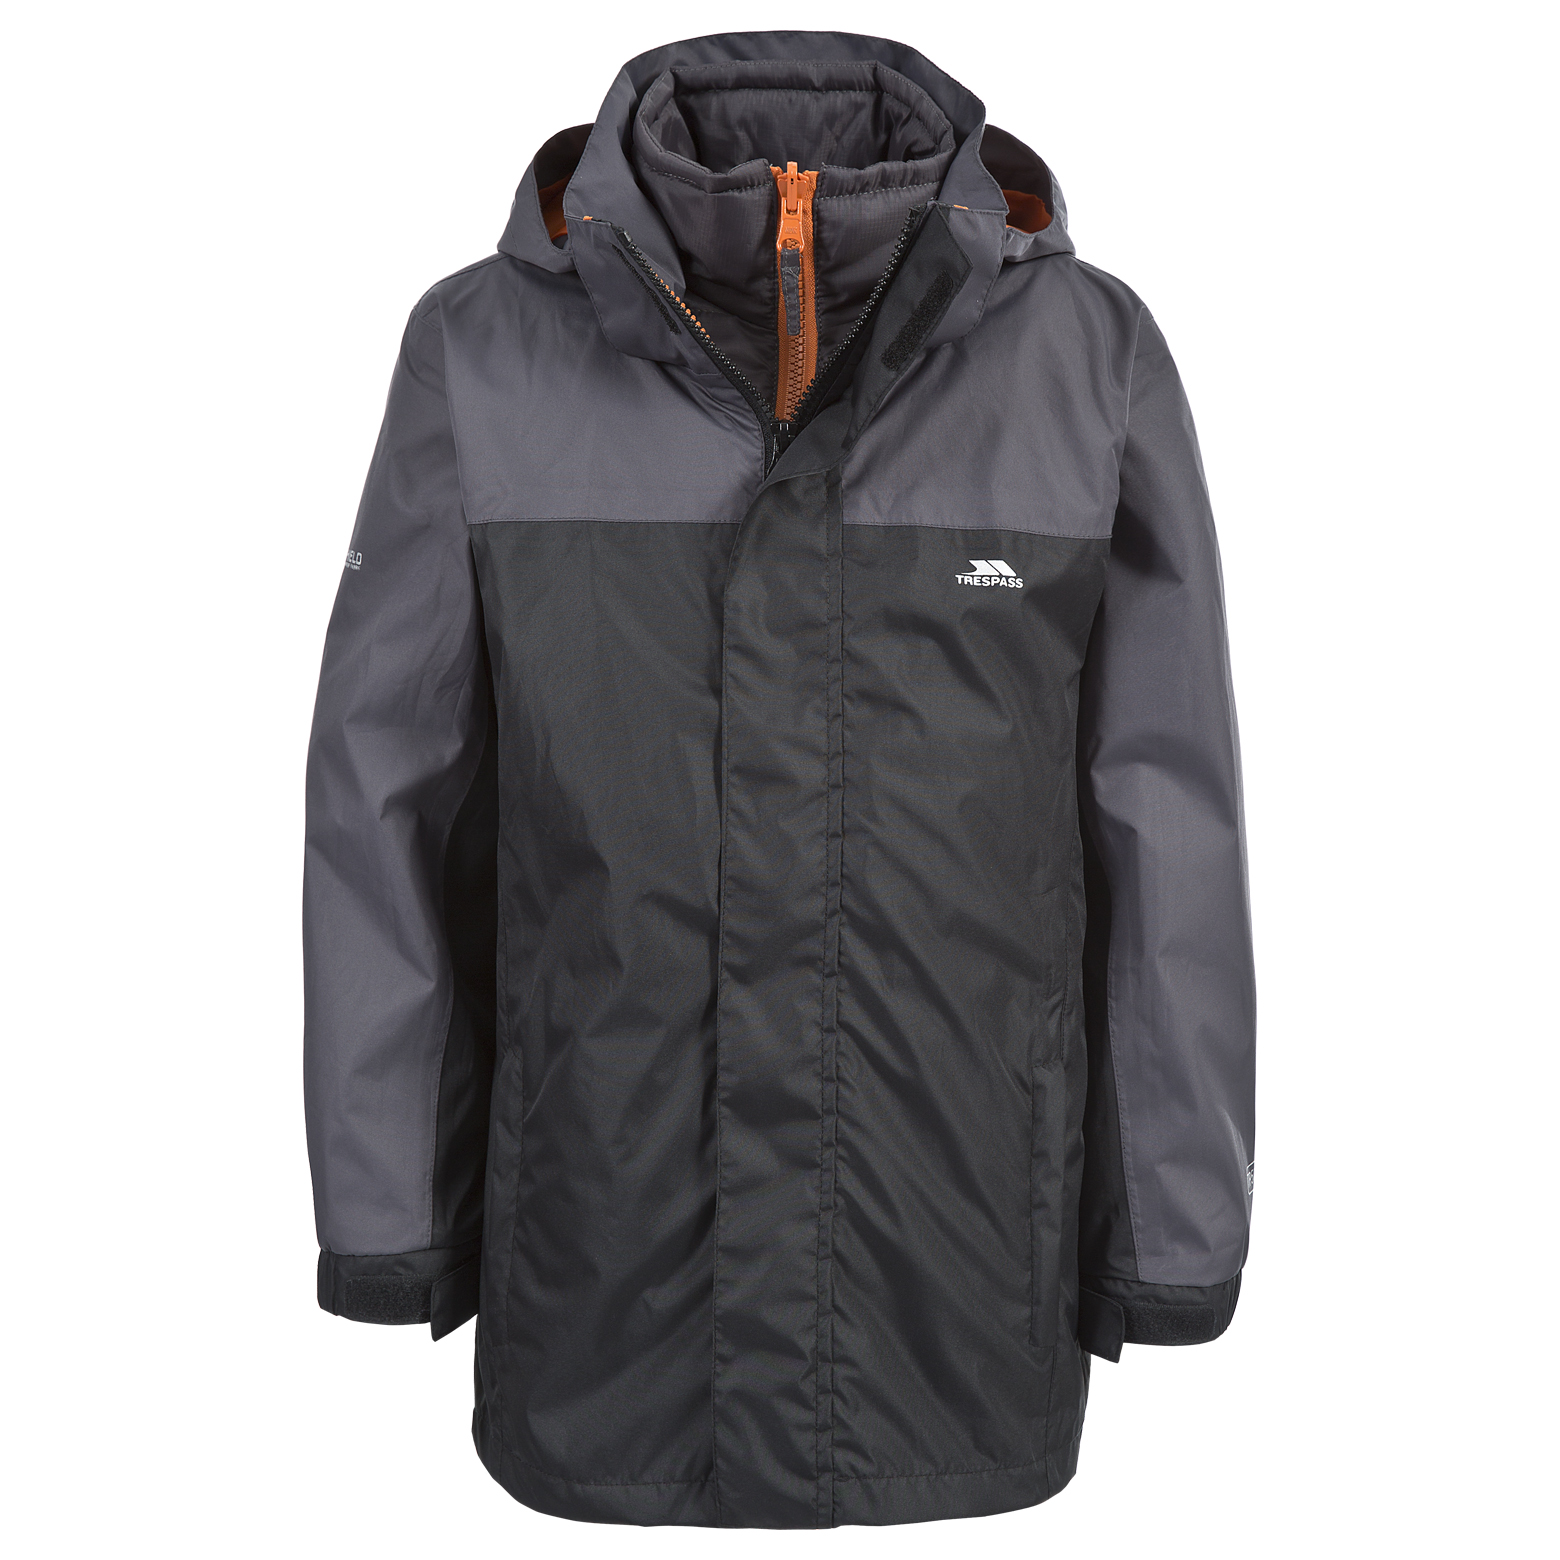 """The new L.L. Bean Peak 3-in-1 Jacket is one of the best jackets I've seen in a long time! The outer shell is lightweight, waterproof, and windproof with fully taped seams. The inner jacket is a water resistant, PrimaLoft liner that can be worn alone or zipped into the shell for very cold days."